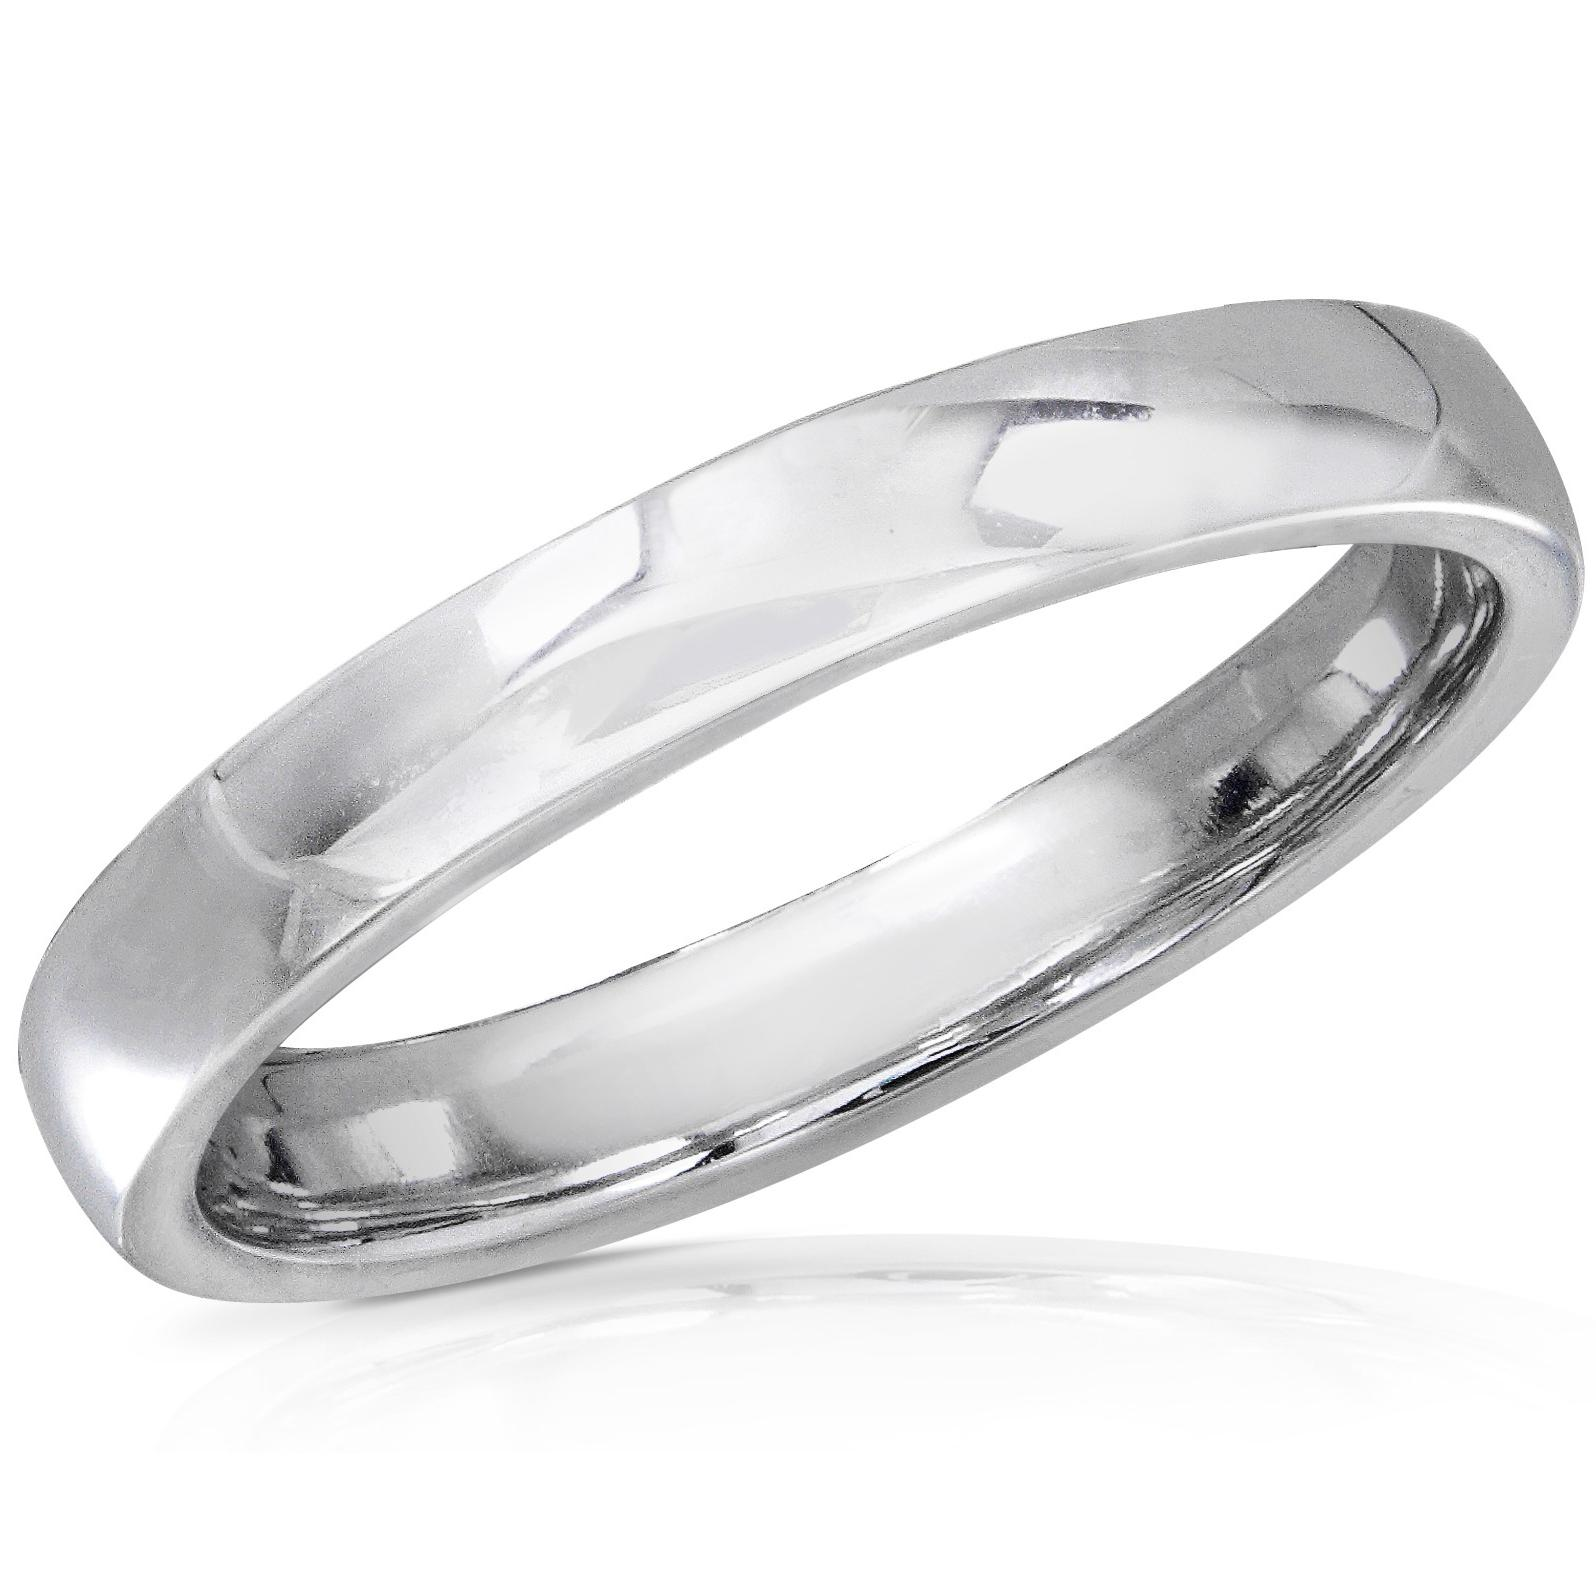 14K White Gold Wedding Band  2.75mm . Double click on above image to view